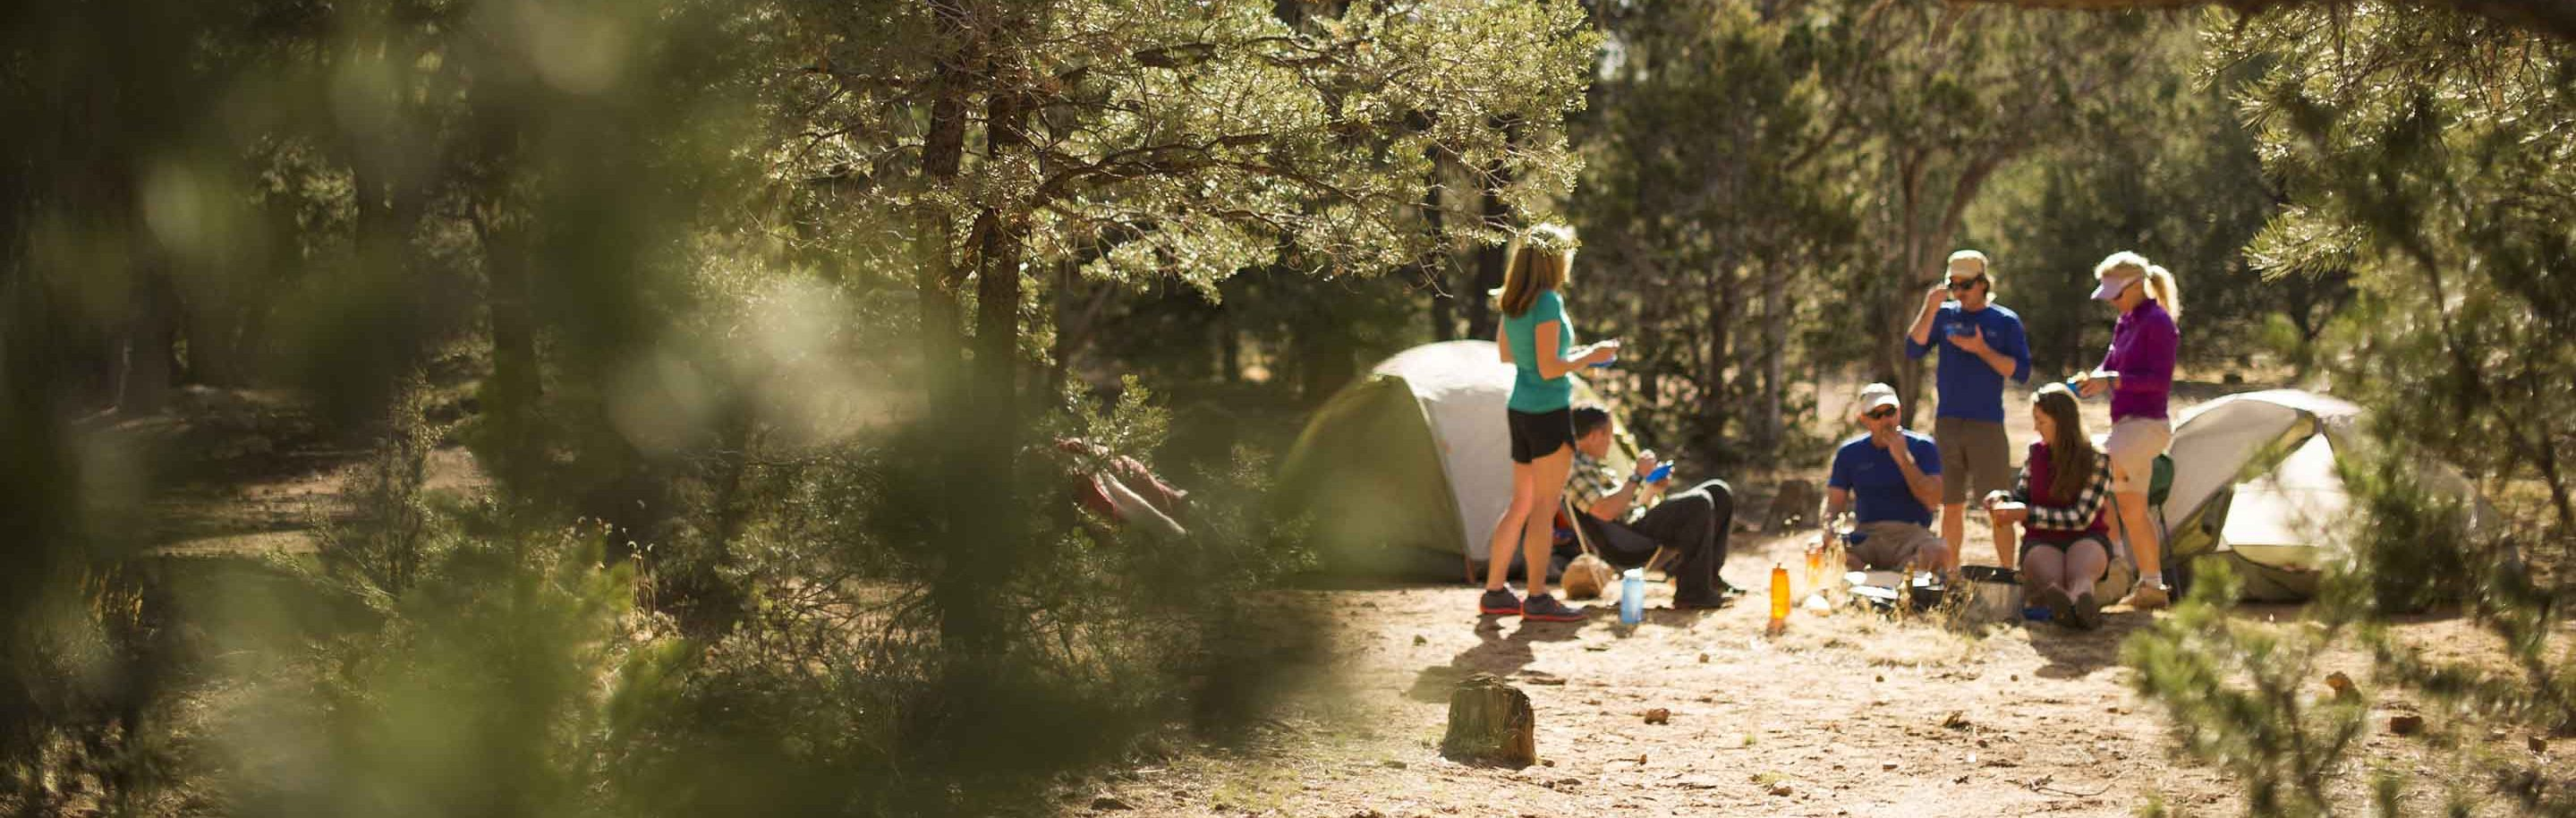 guided hiking and camping trips all over the southwest with AOA Adventures